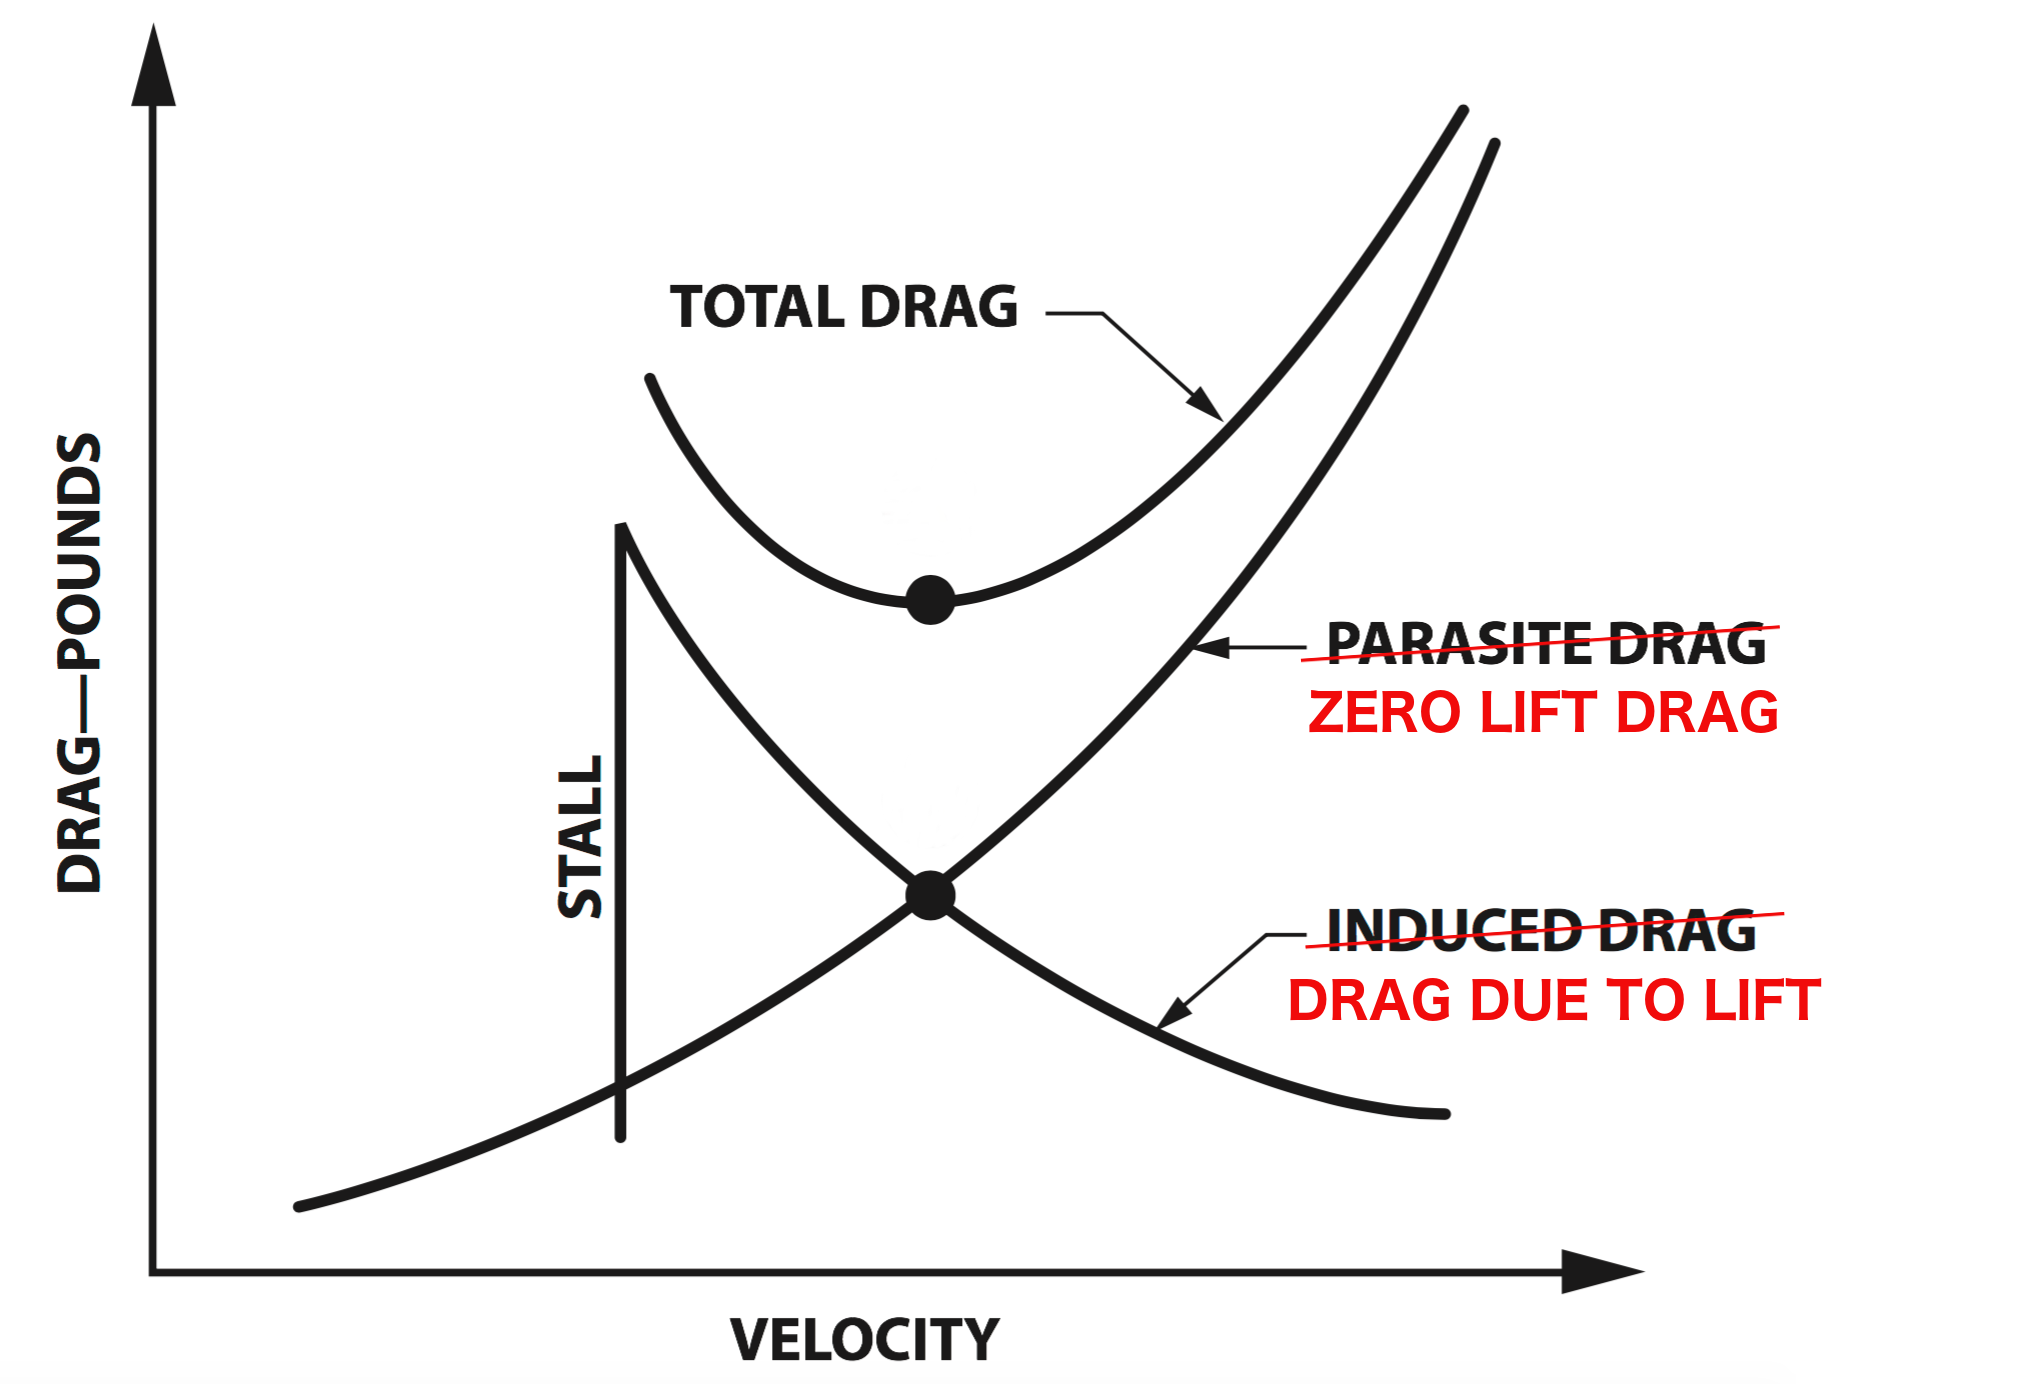 induced drag and parasitic drag